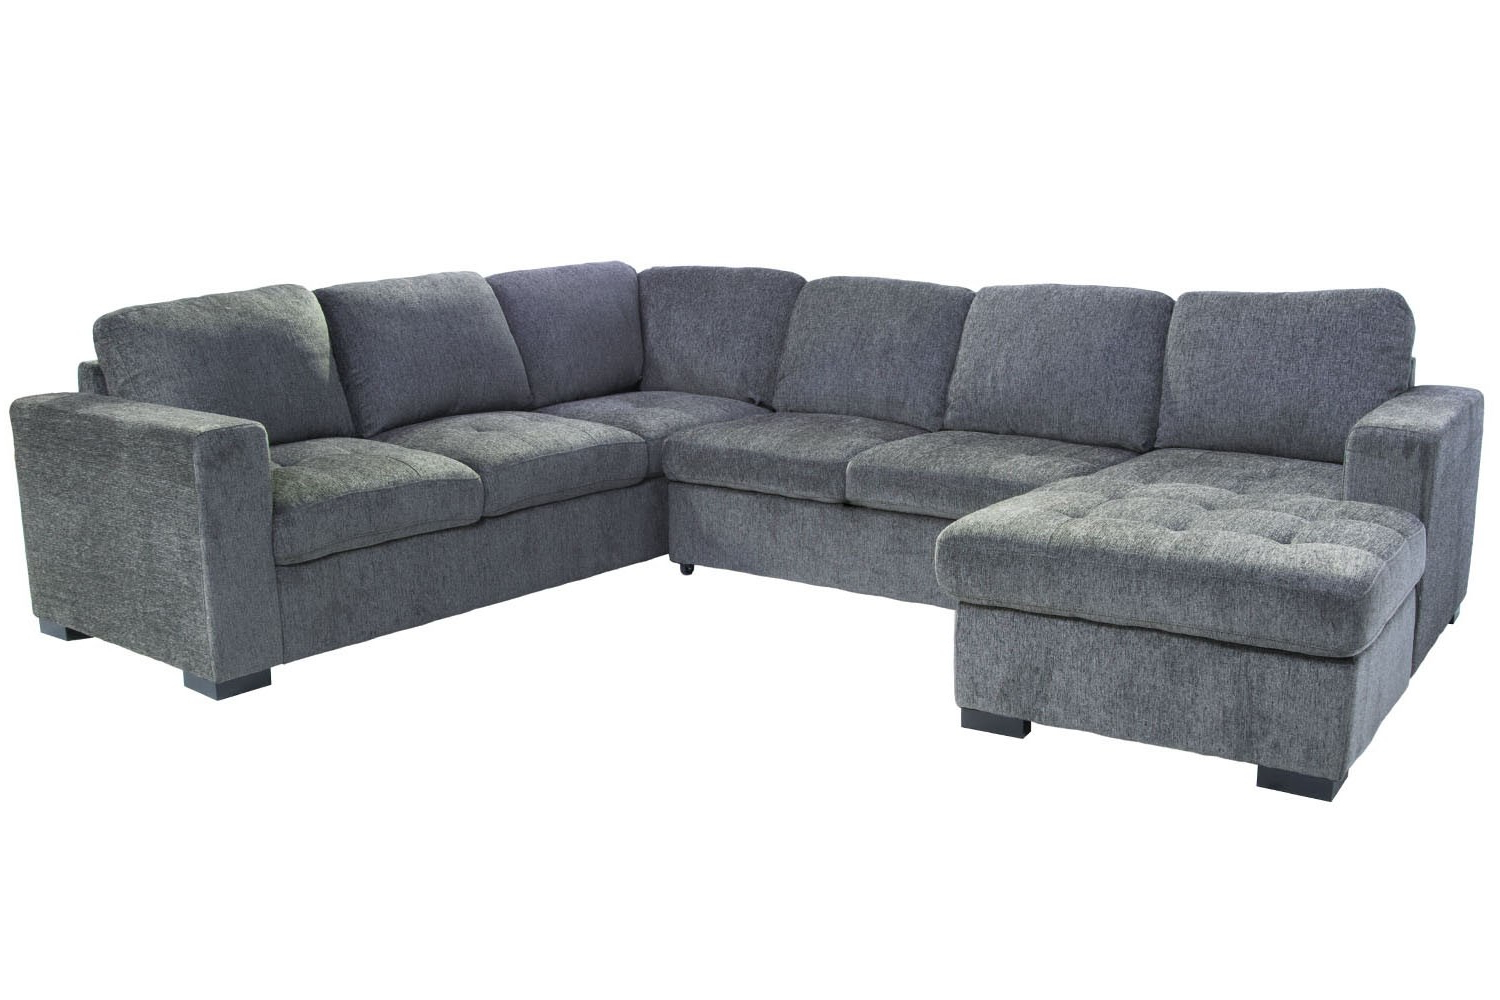 2018 Escondido Sofa Chairs Within Sectional Sofas (View 15 of 20)